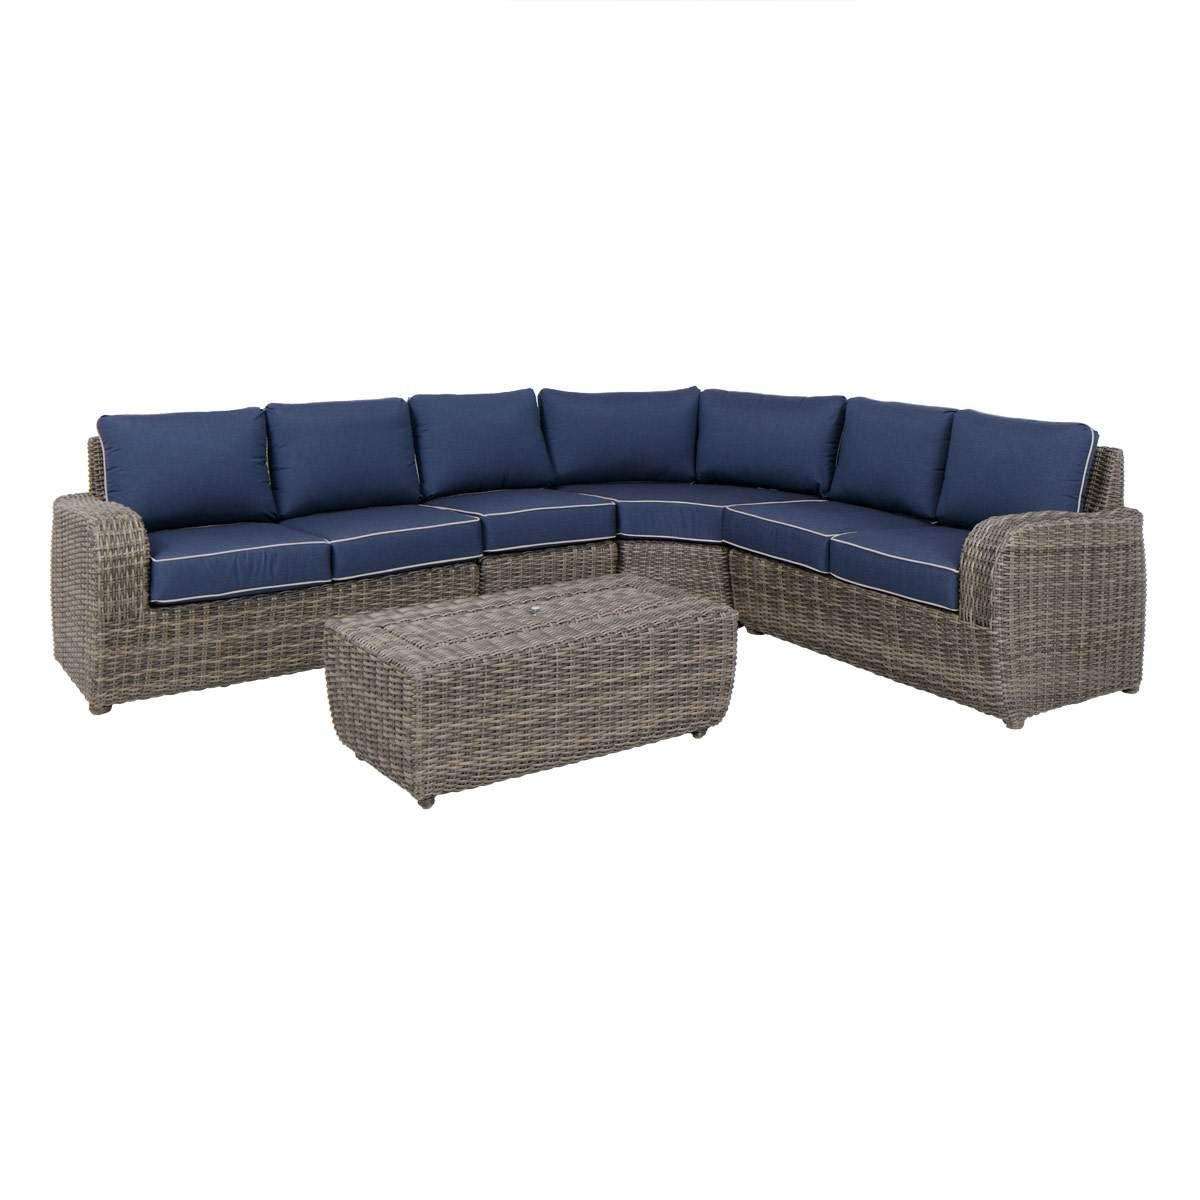 Sensational Seaport 4 Piece Sectional In Blue S H O P Jerome Gmtry Best Dining Table And Chair Ideas Images Gmtryco